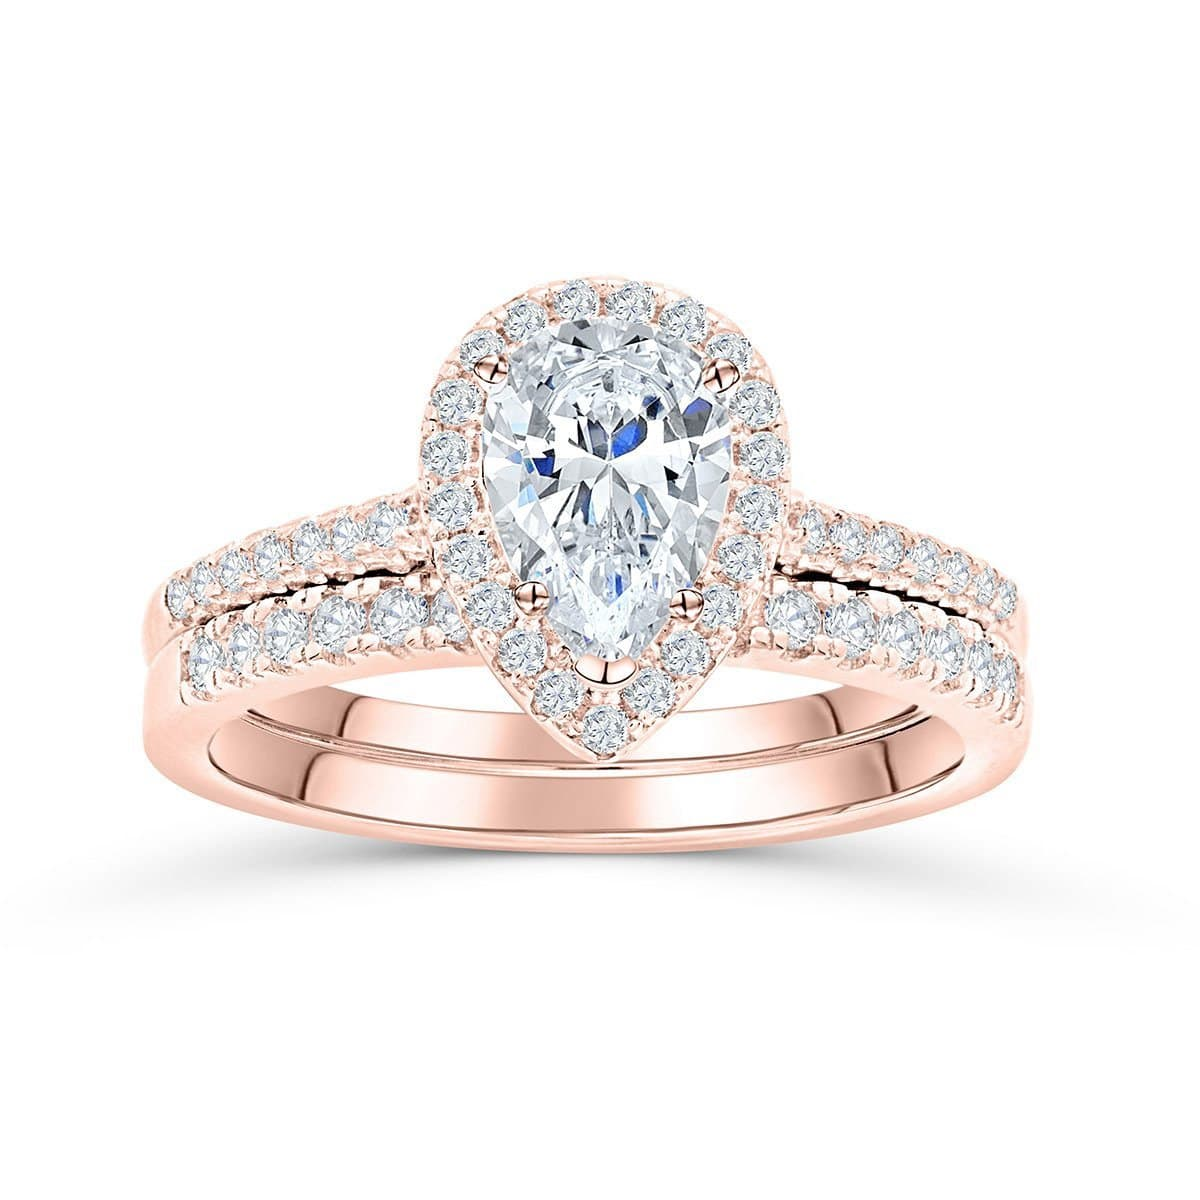 Pear Cut Halo Engagement Ring Rose Gold Halo Wedding Set Modern Gents Trading Co